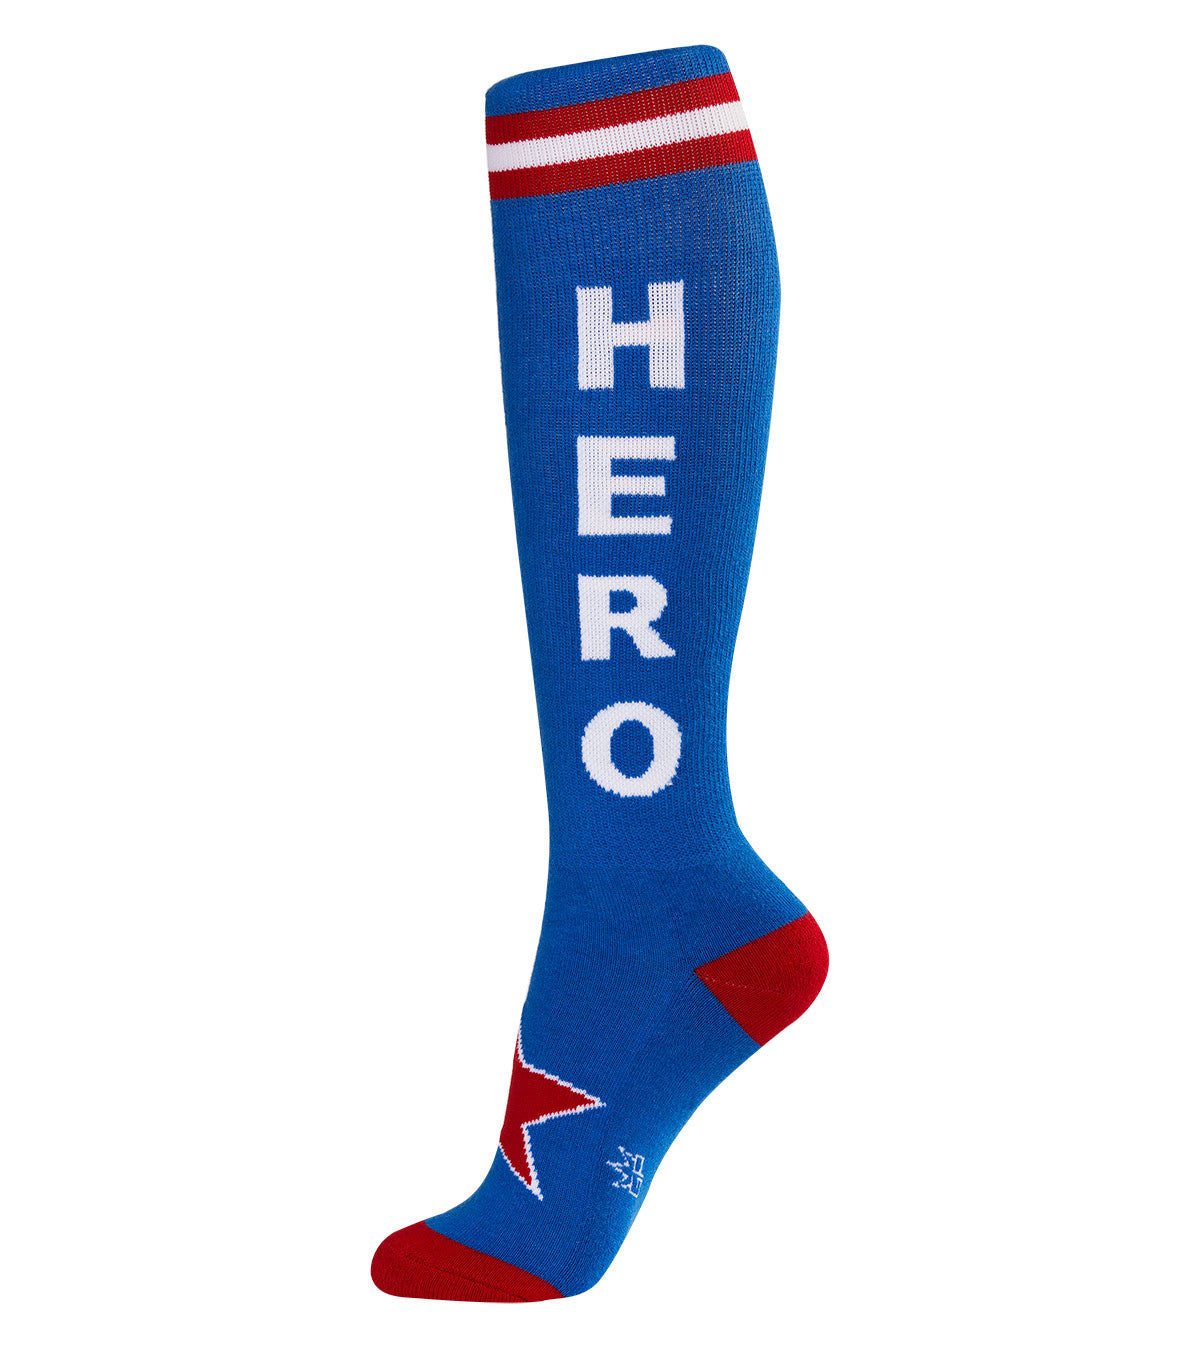 Hero Socks - Blue, Red & White Unisex Athletic Knee Socks - Off The Wall Toys and Gifts